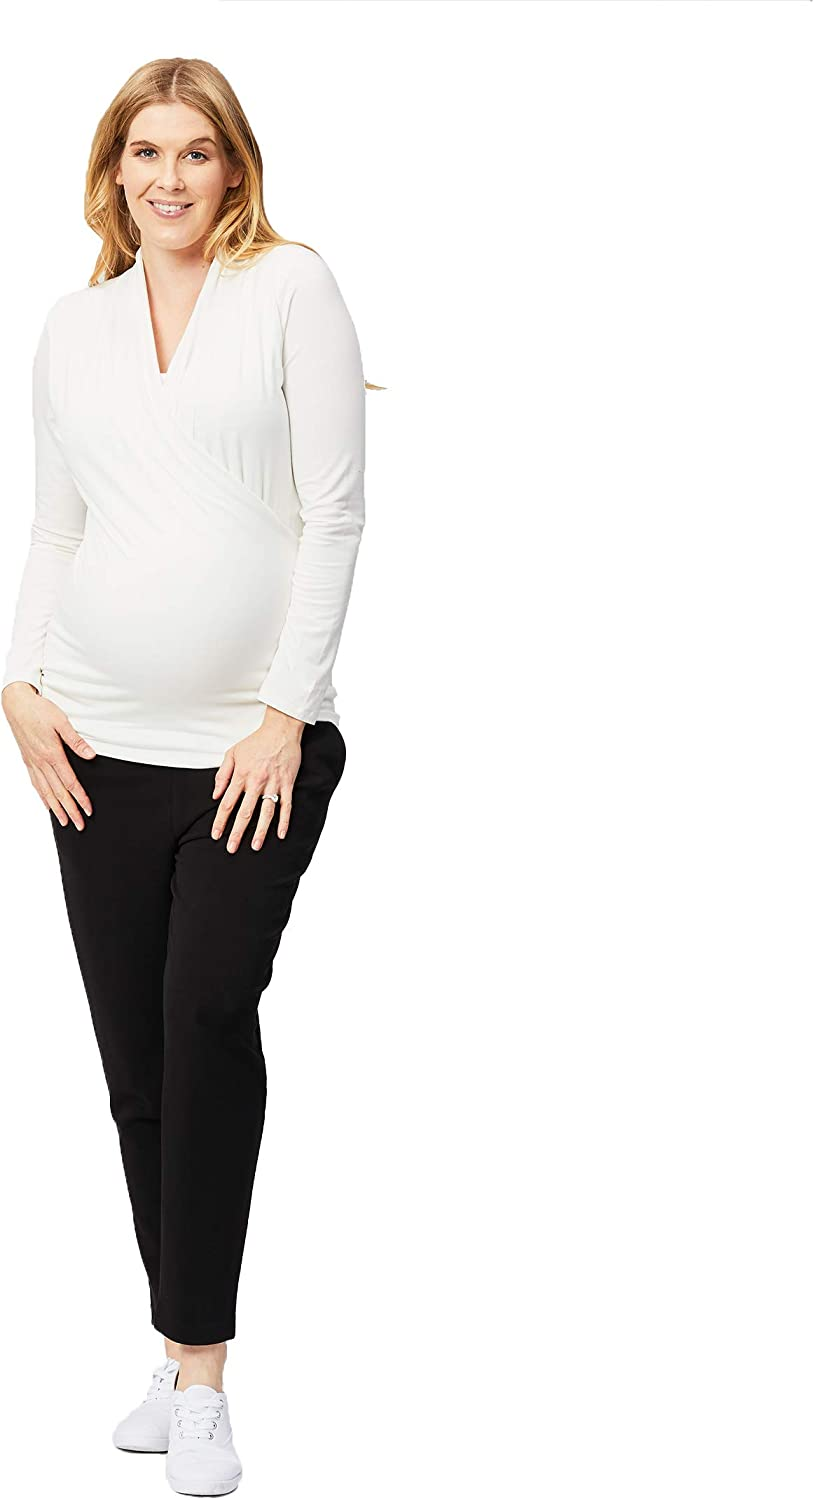 X-Small T-Shirt Cake Maternity Womens Long Sleeve Maternity and Nursing Top White